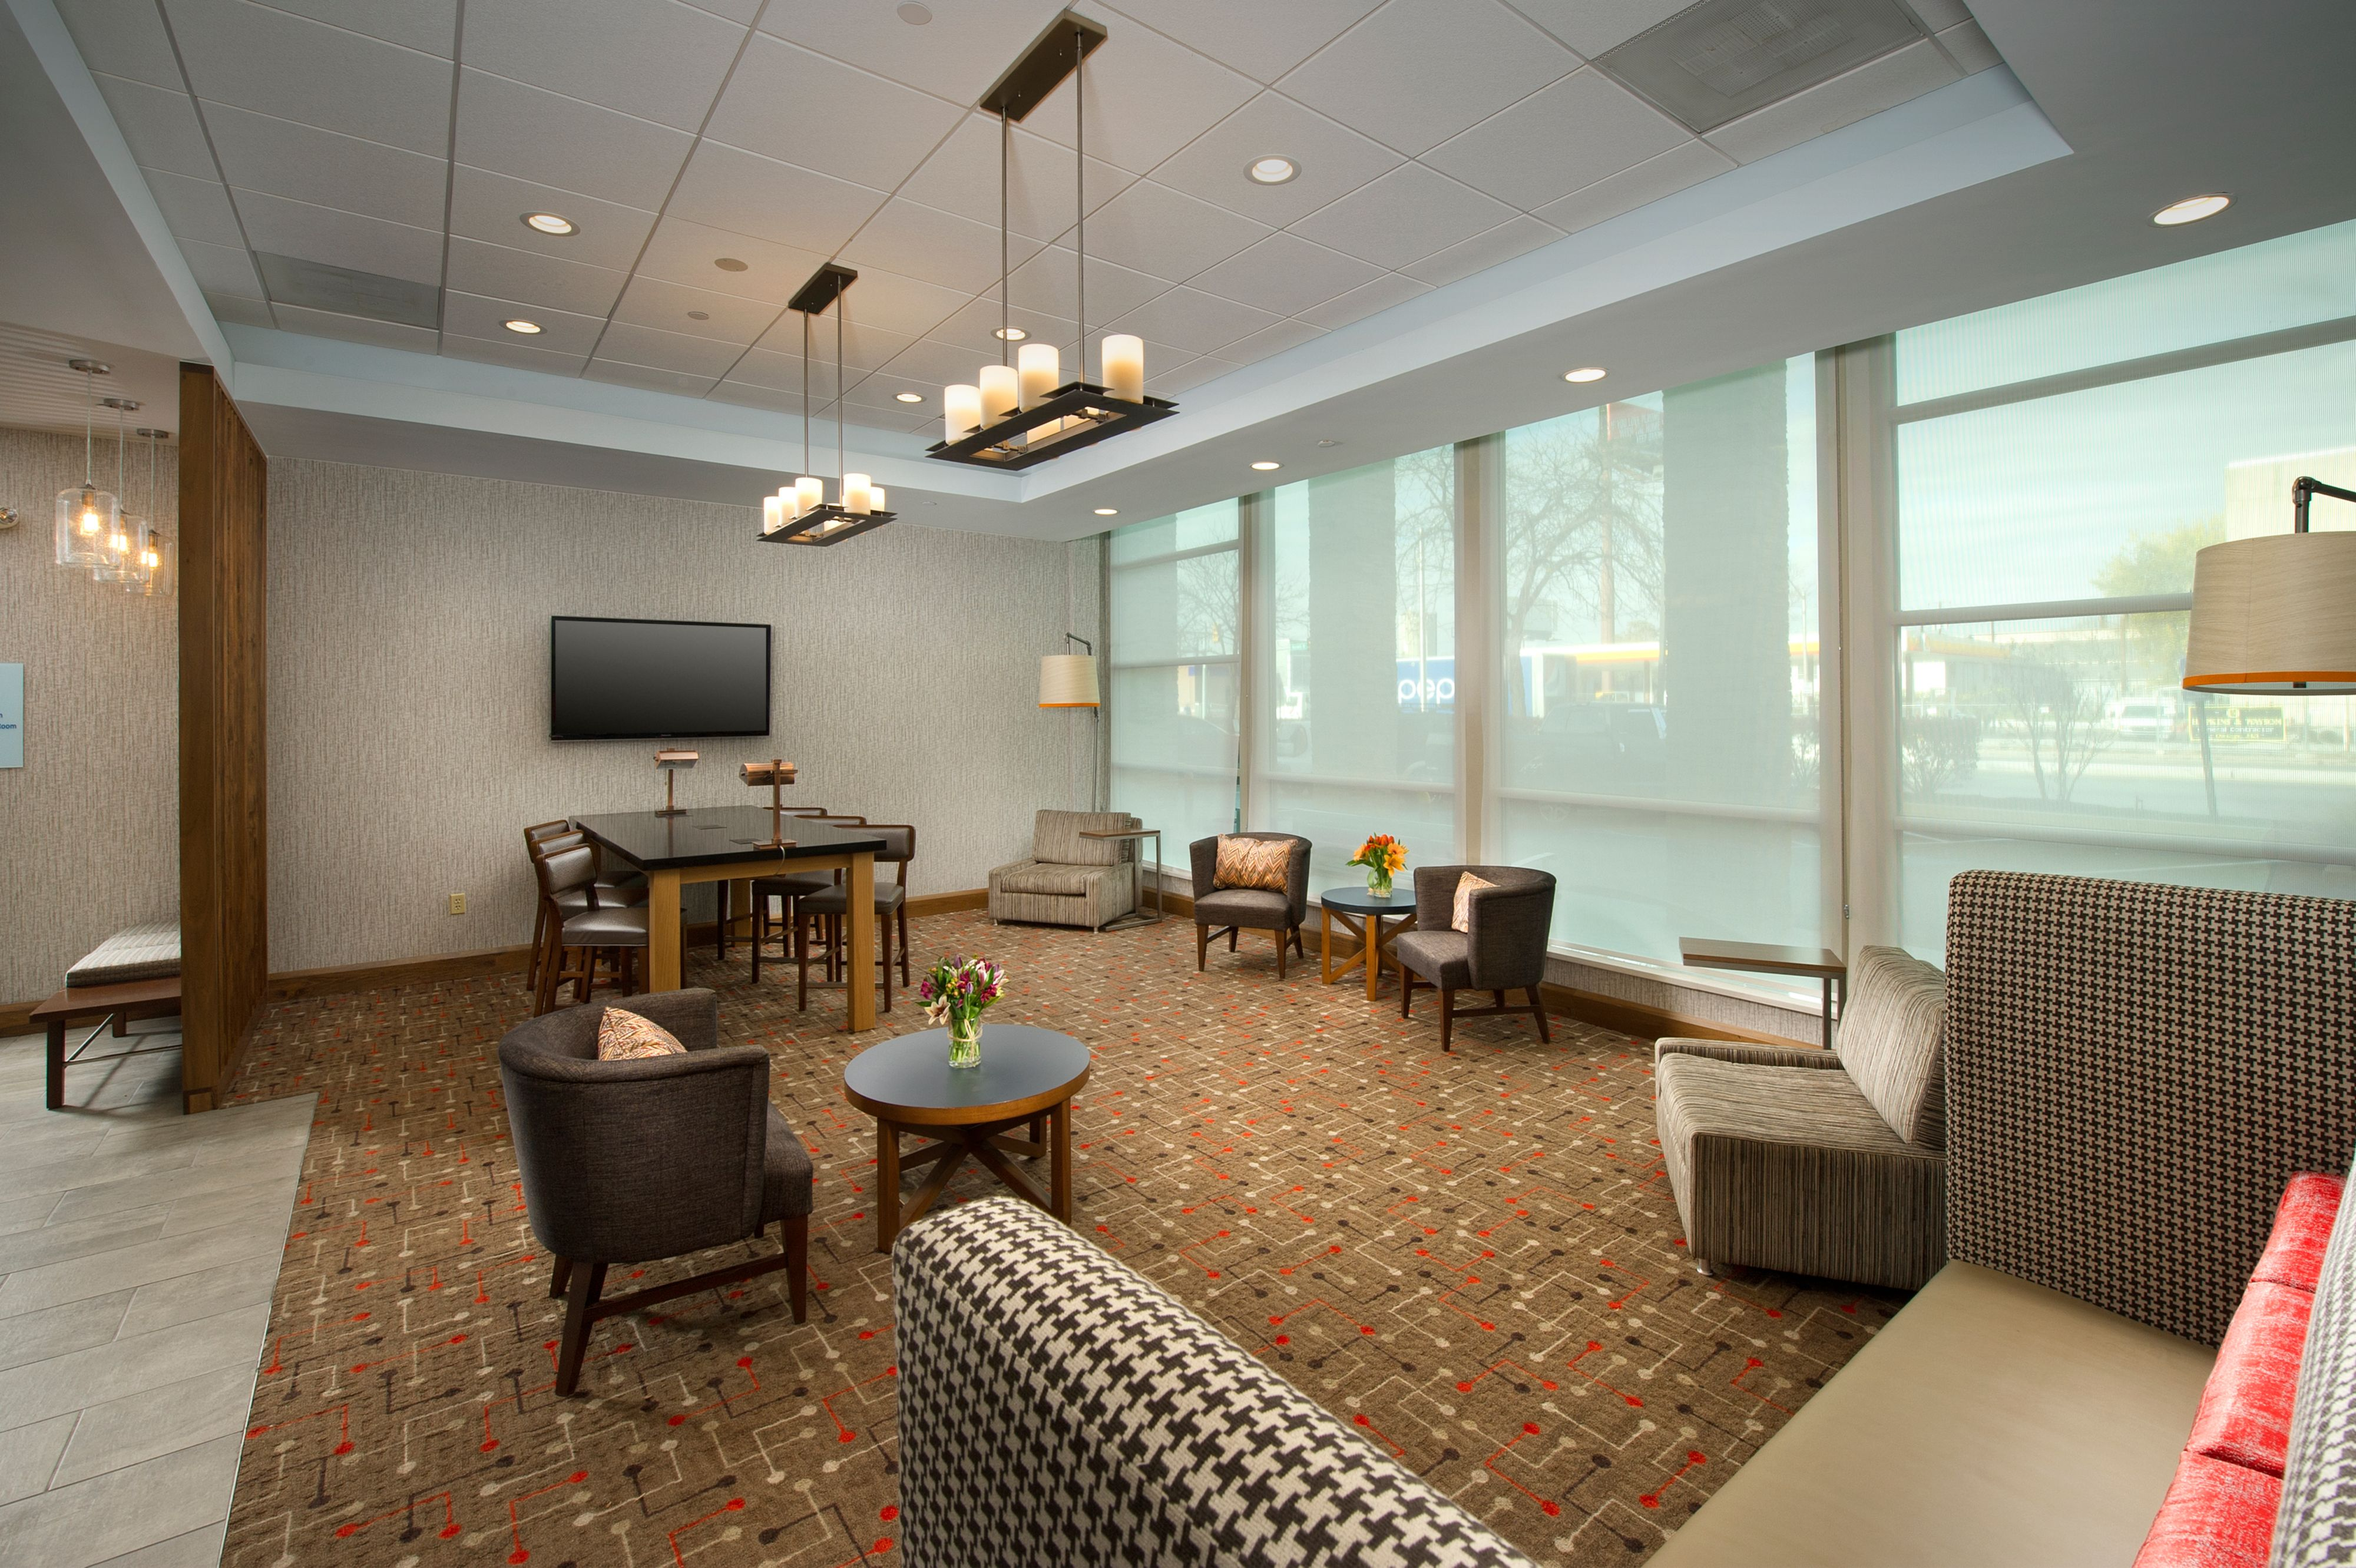 Holiday Inn Express Baltimore At The Stadiums image 4